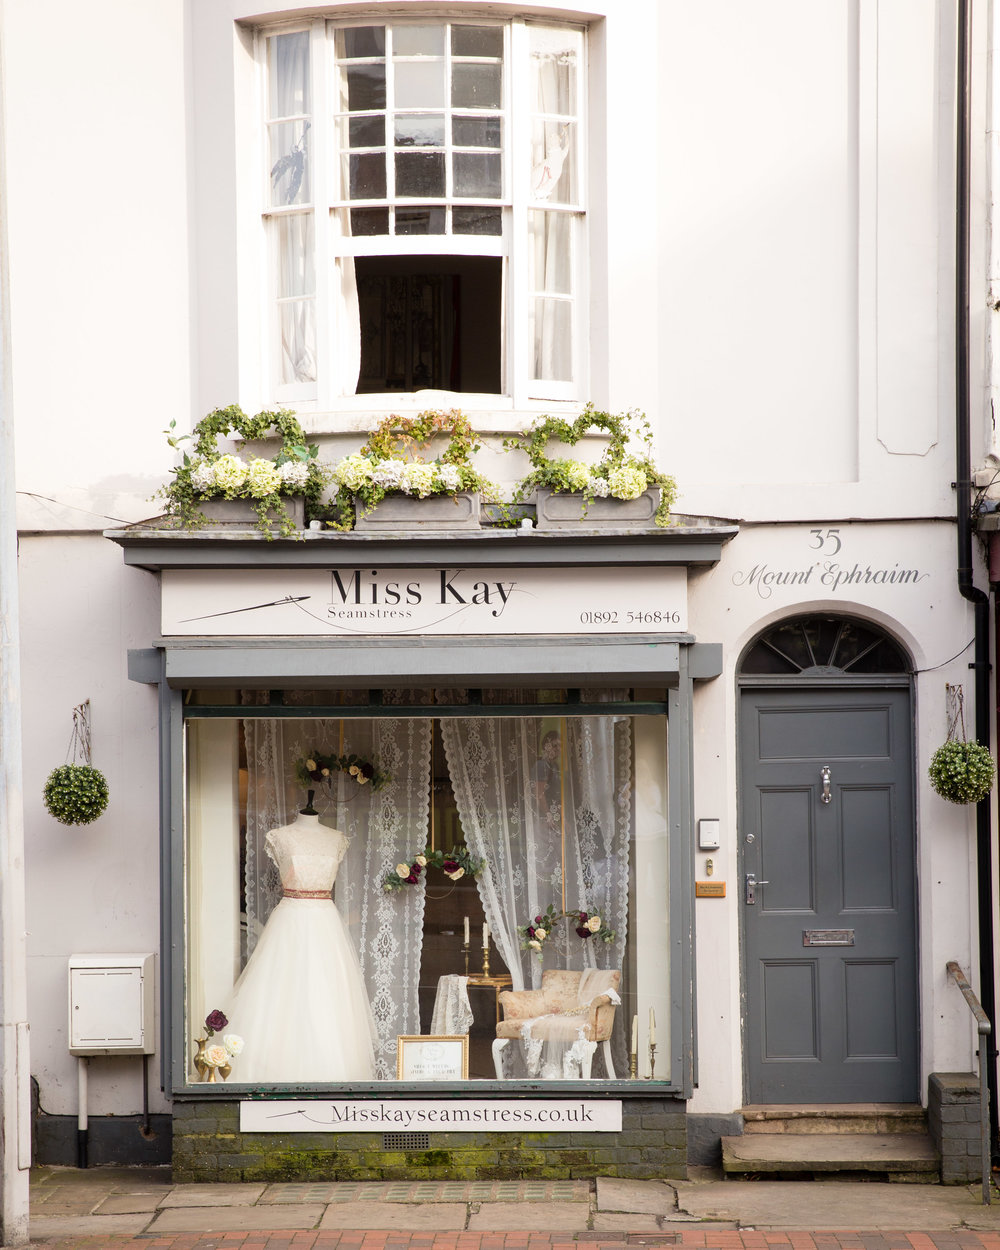 Vintage Styling and Hiring-Elegant Vintage Wedding Window Dressing-Kent